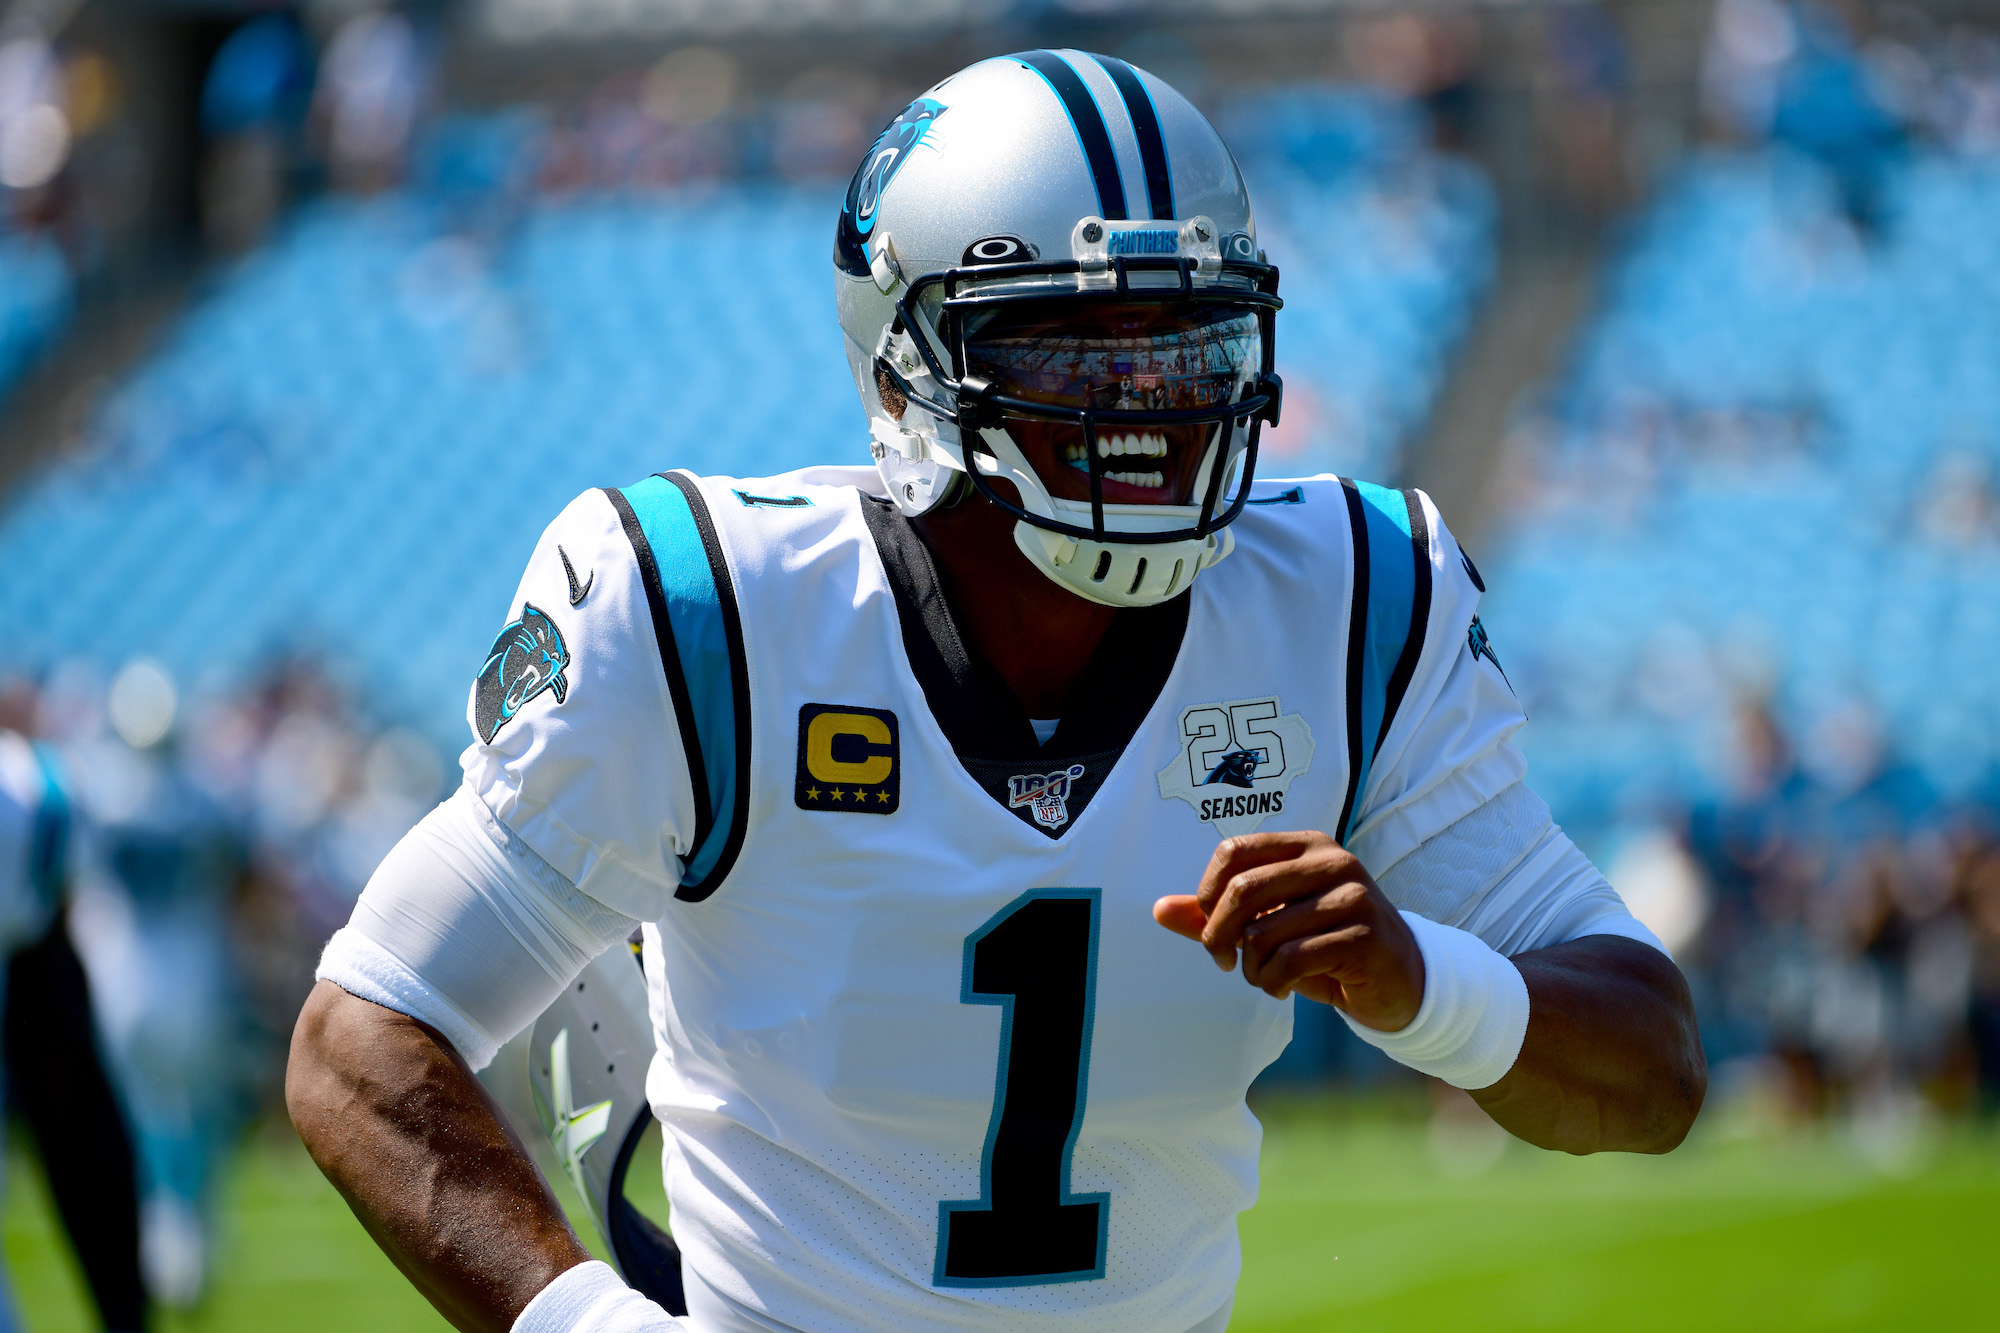 Cam Newton is certainly confident, but all the positivity in the world can't overcome injury issues.